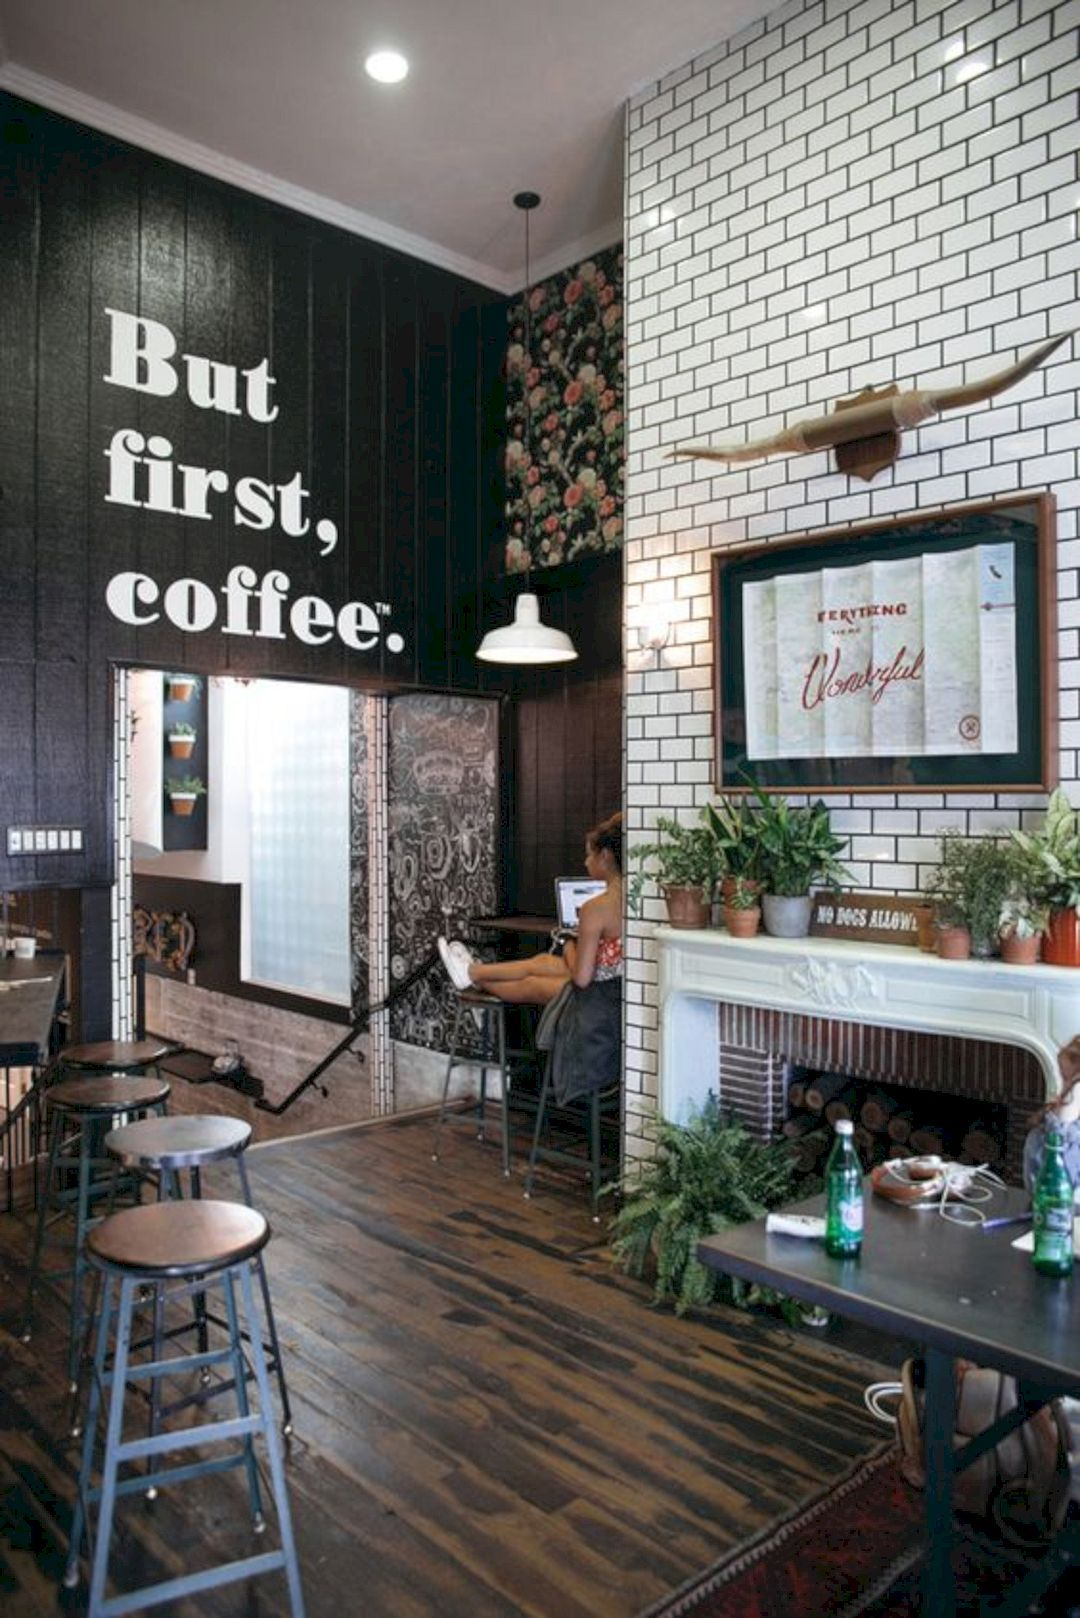 16 small cafe interior design ideas https www futuristarchitecture com